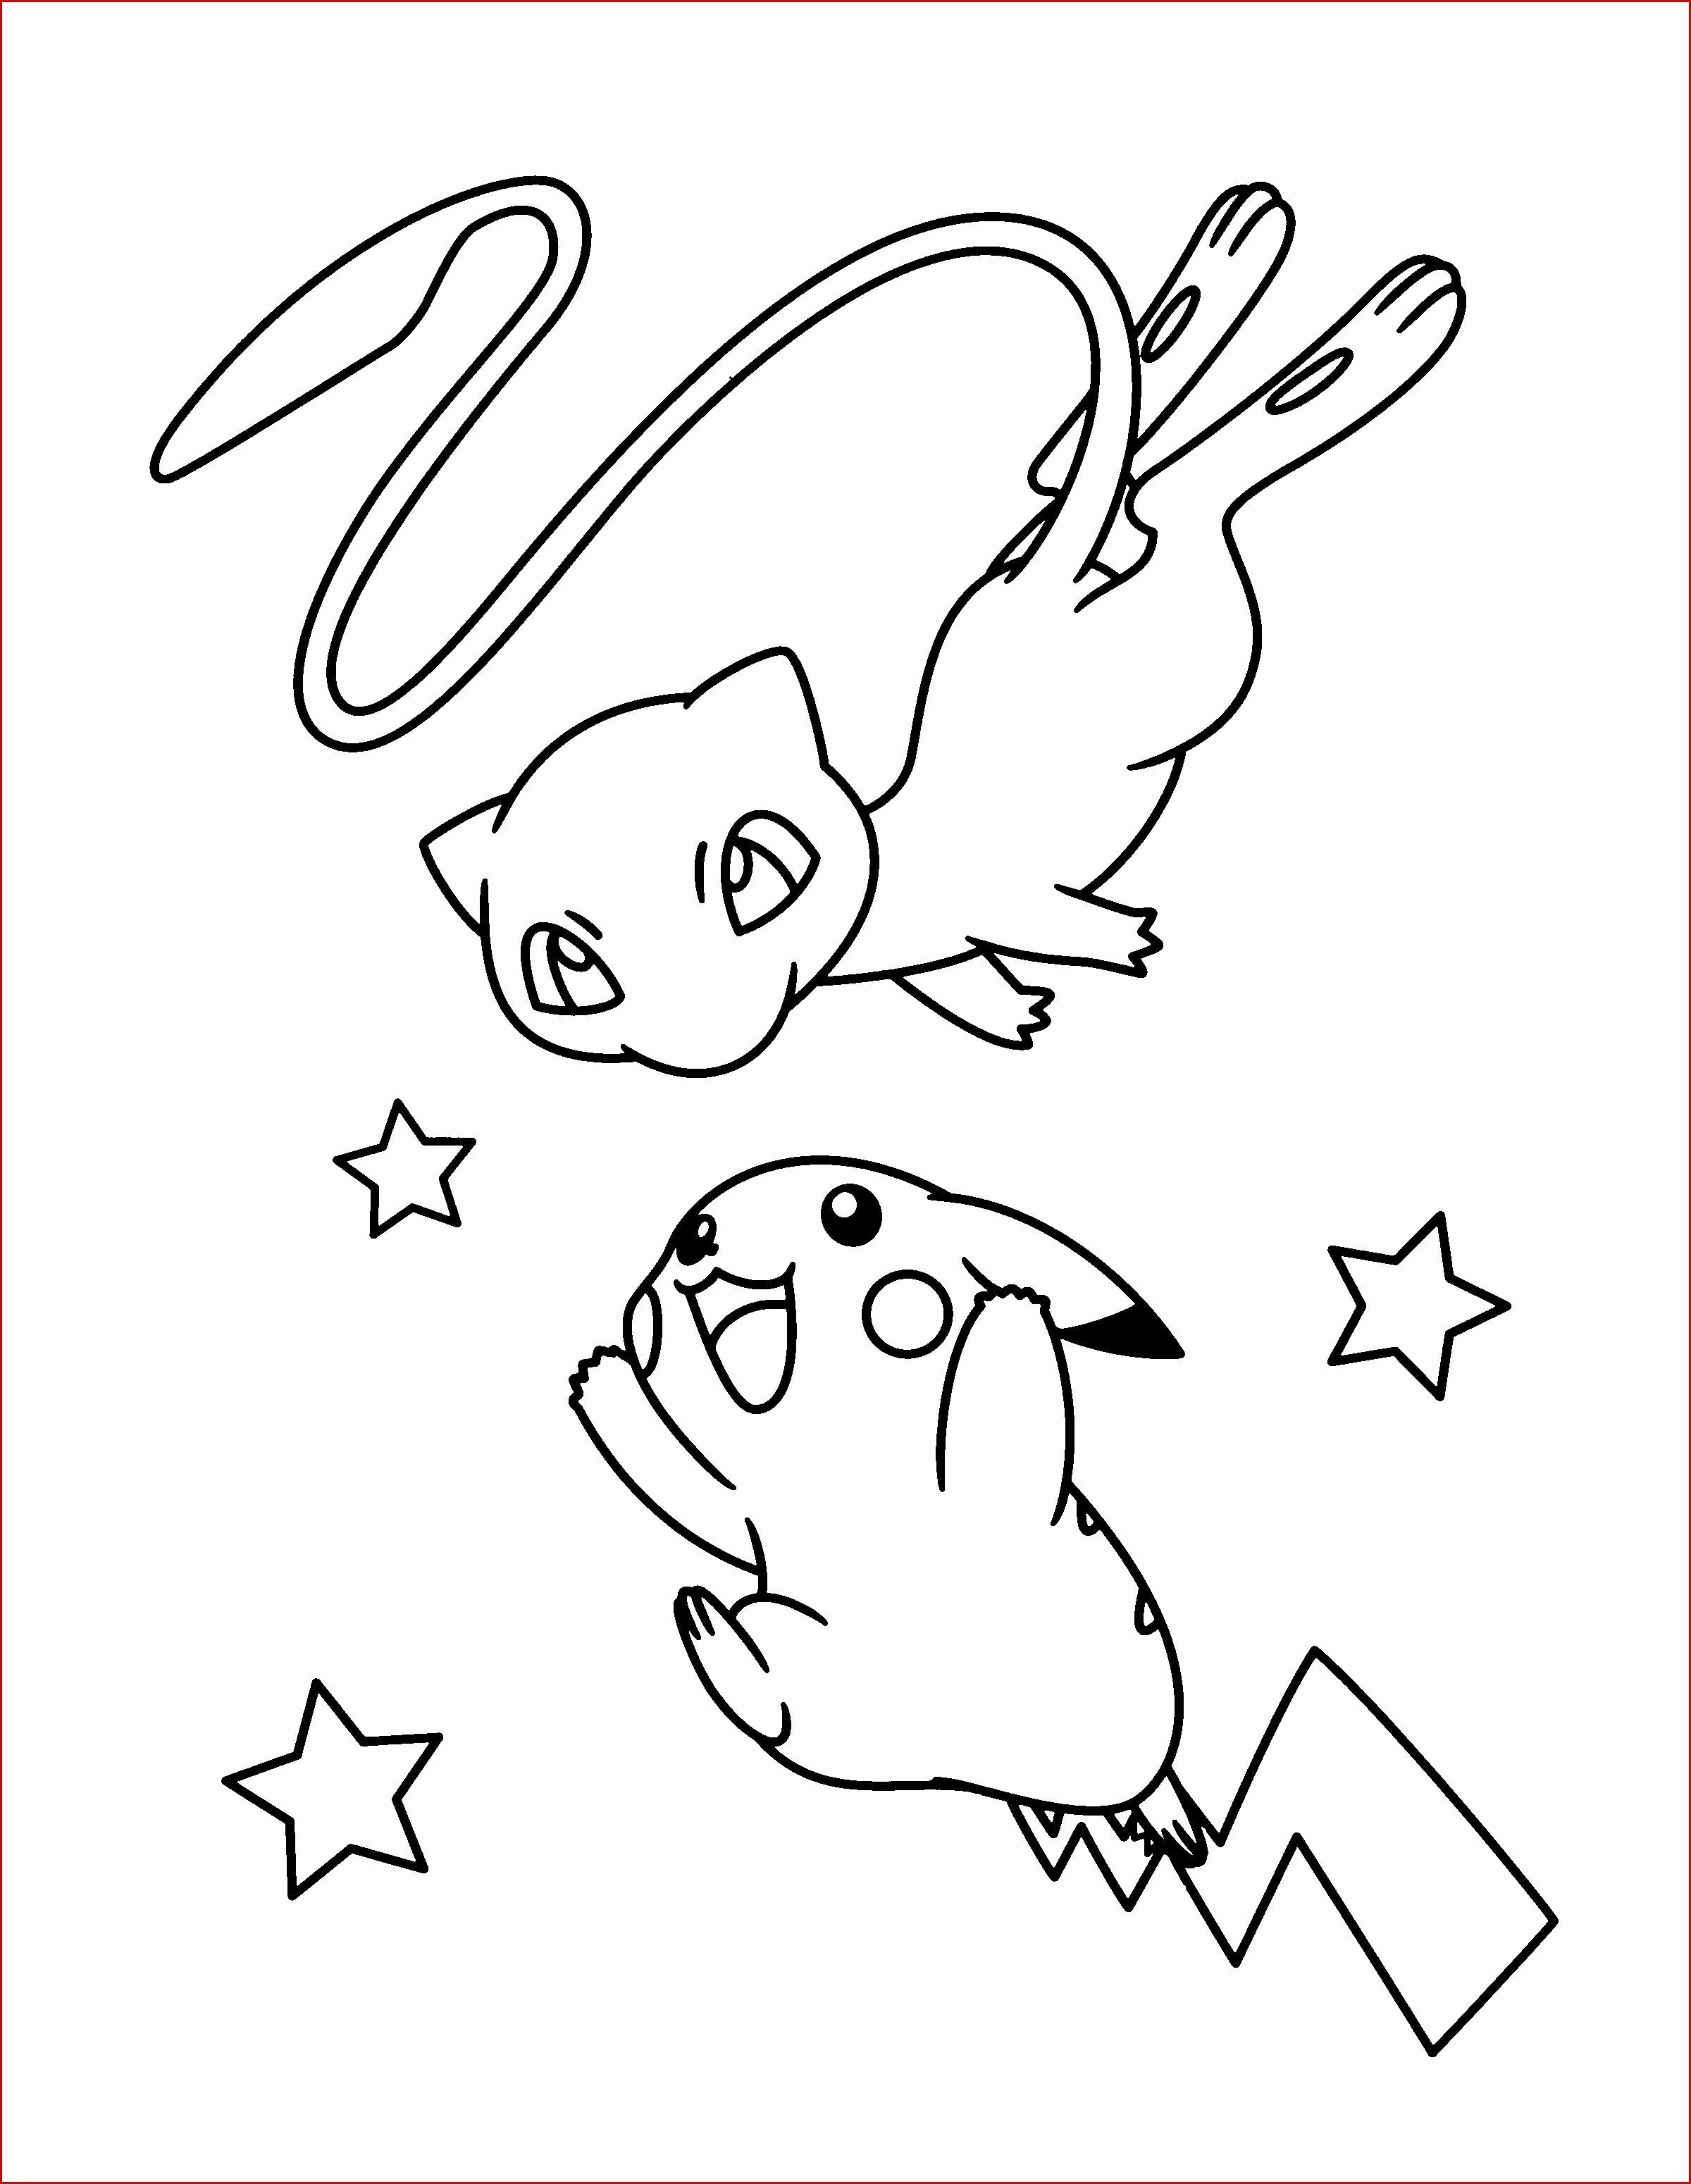 Cute Mew Coloring Pages Mew Coloring Pages Cute